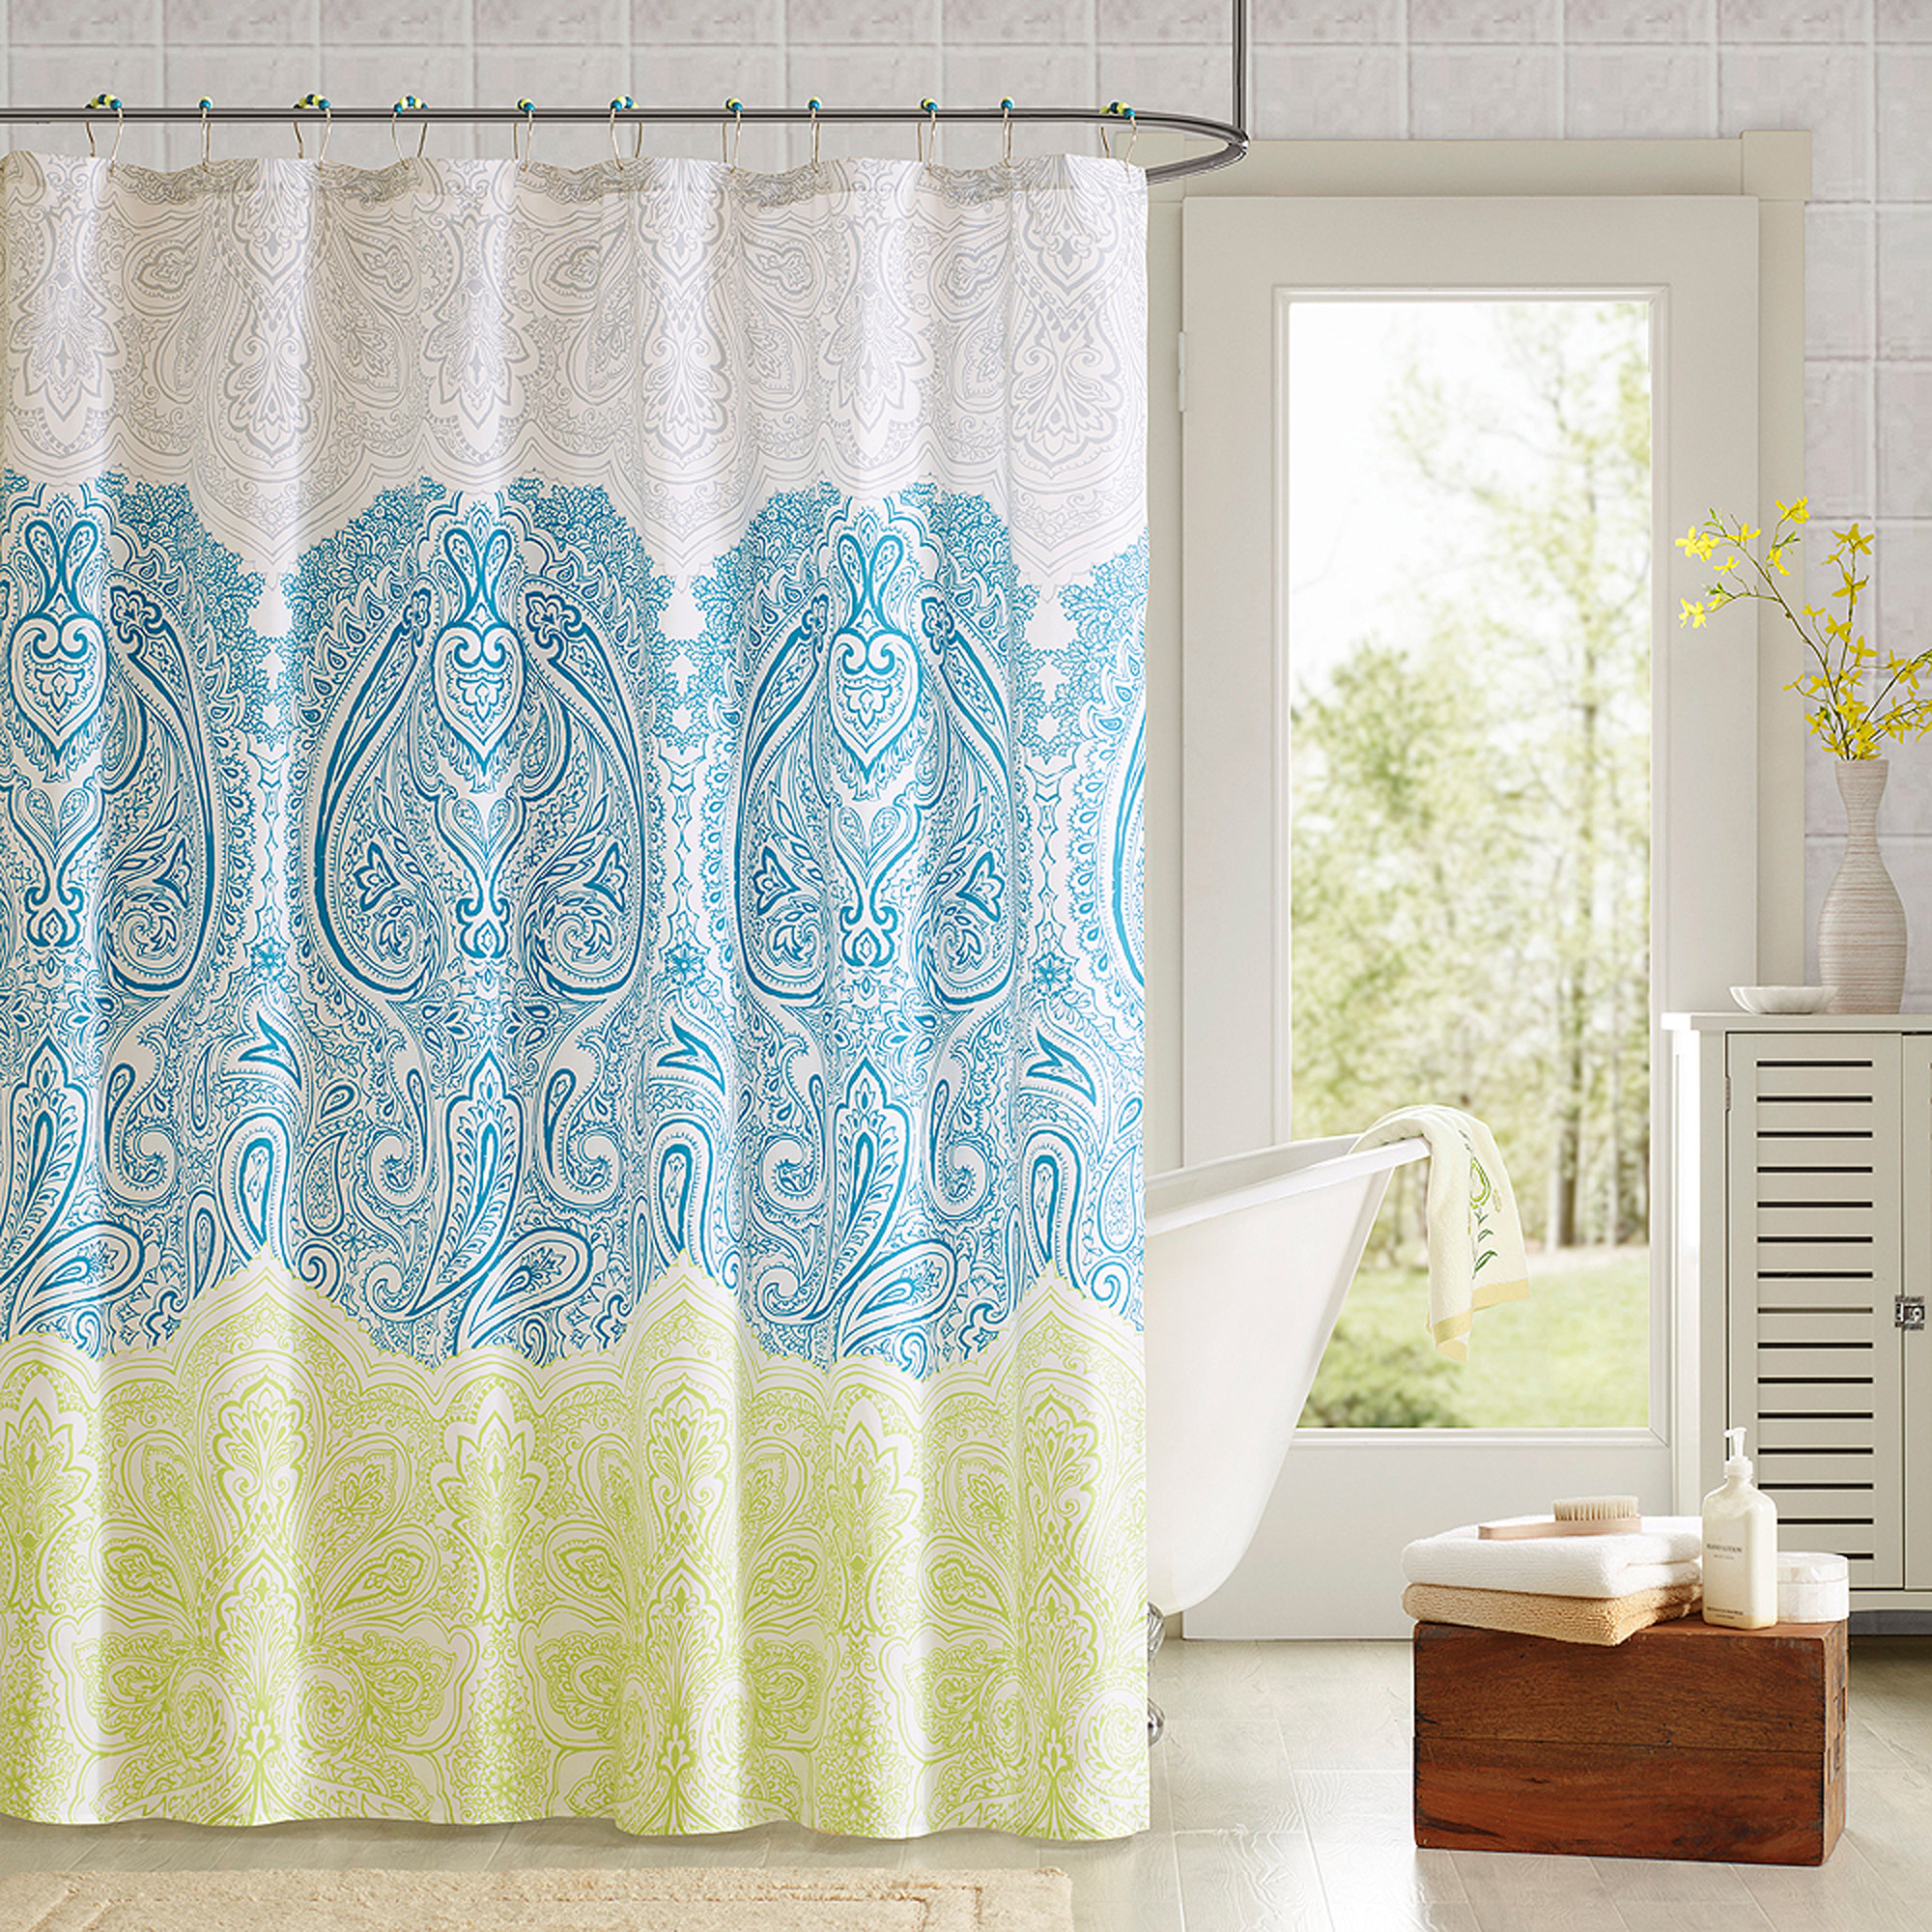 Image of 90 Degrees by Design Lab Lacy Printed Shower Curtain and Hook Set